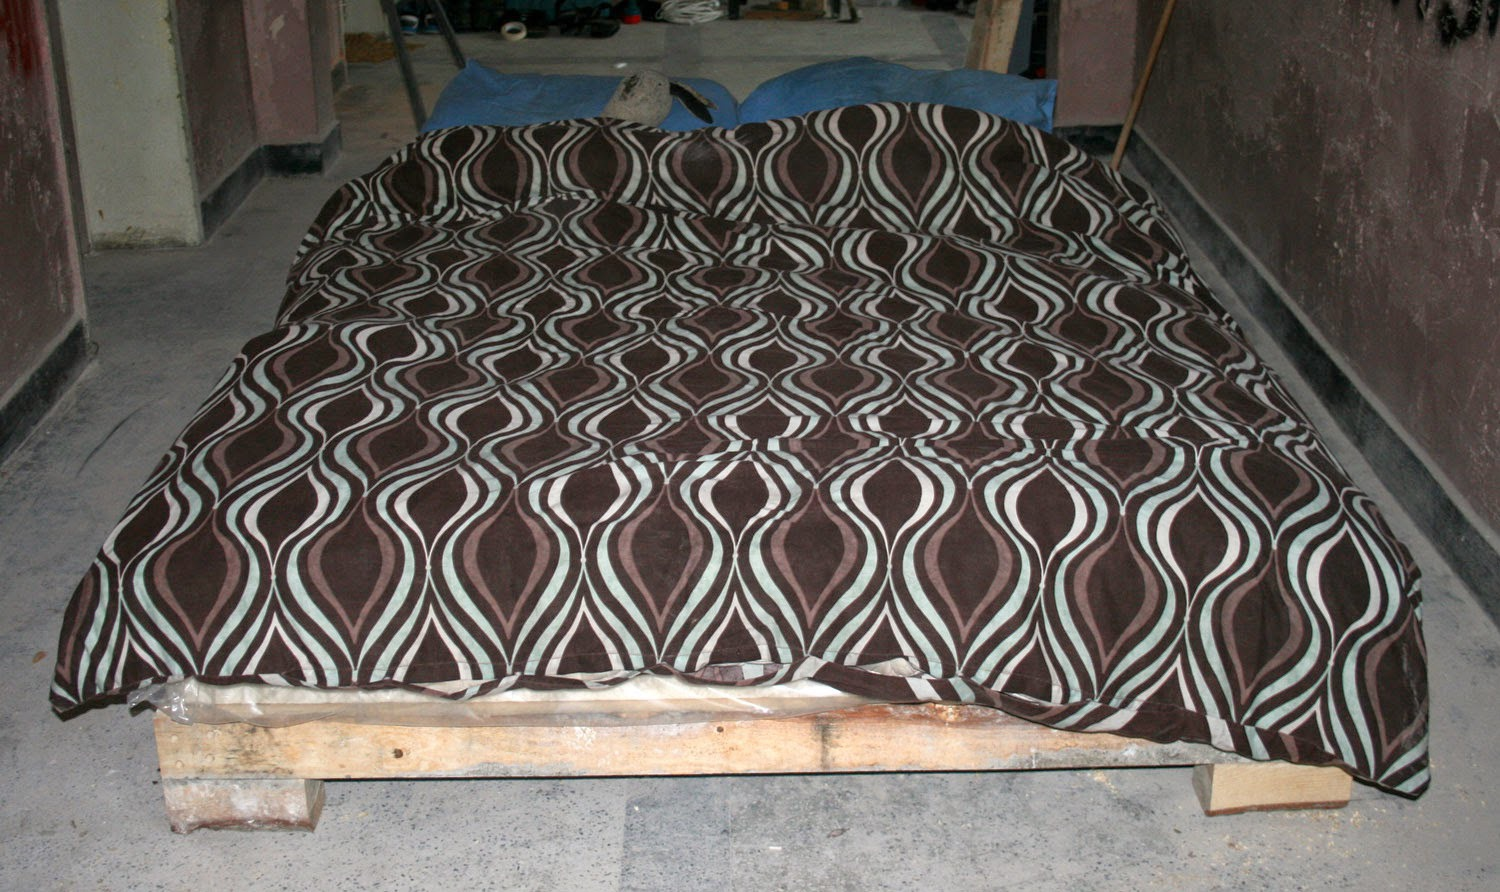 12-The-finished-bed